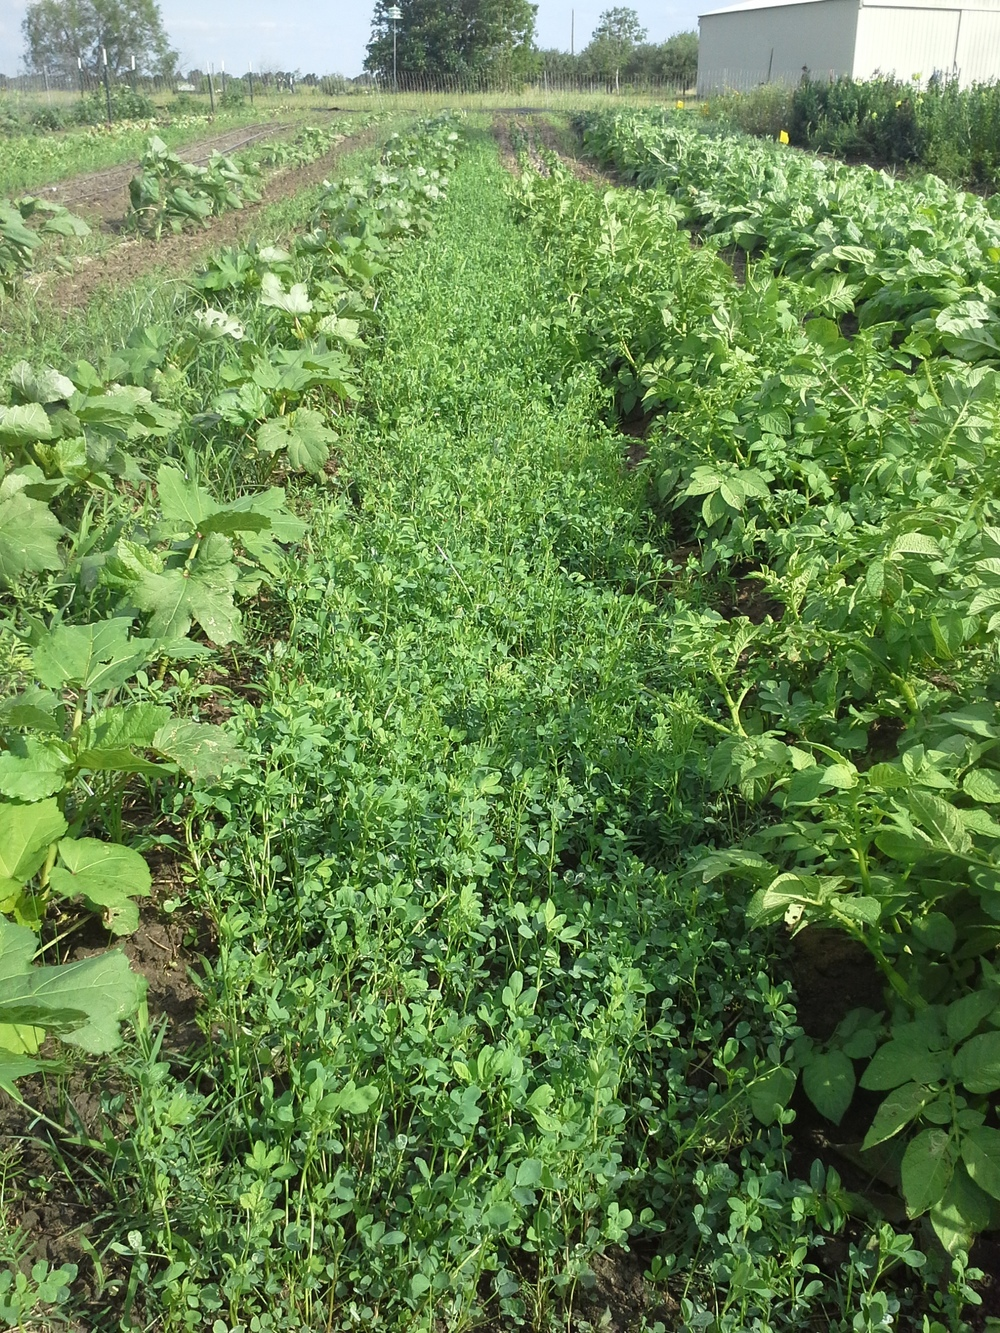 The alfalfa and vetch are going to TOWN in the aisles here between french fingerling potatoes and okra. Hooray!